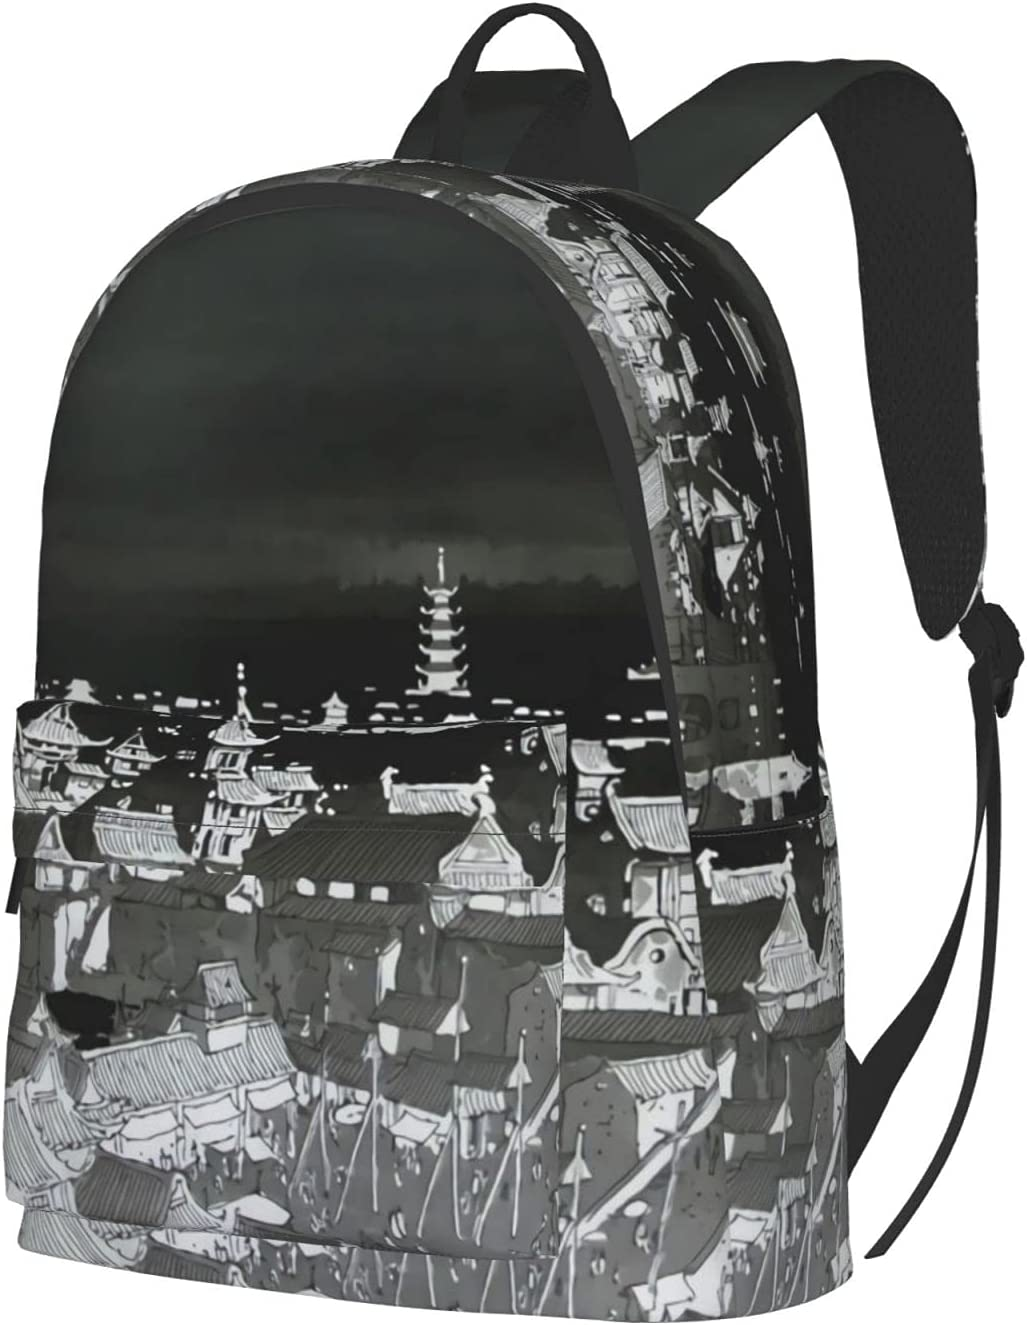 Large Capacity Max 73% OFF Backpack Water-Resistant Complete Free Shipping Small Purse Sho